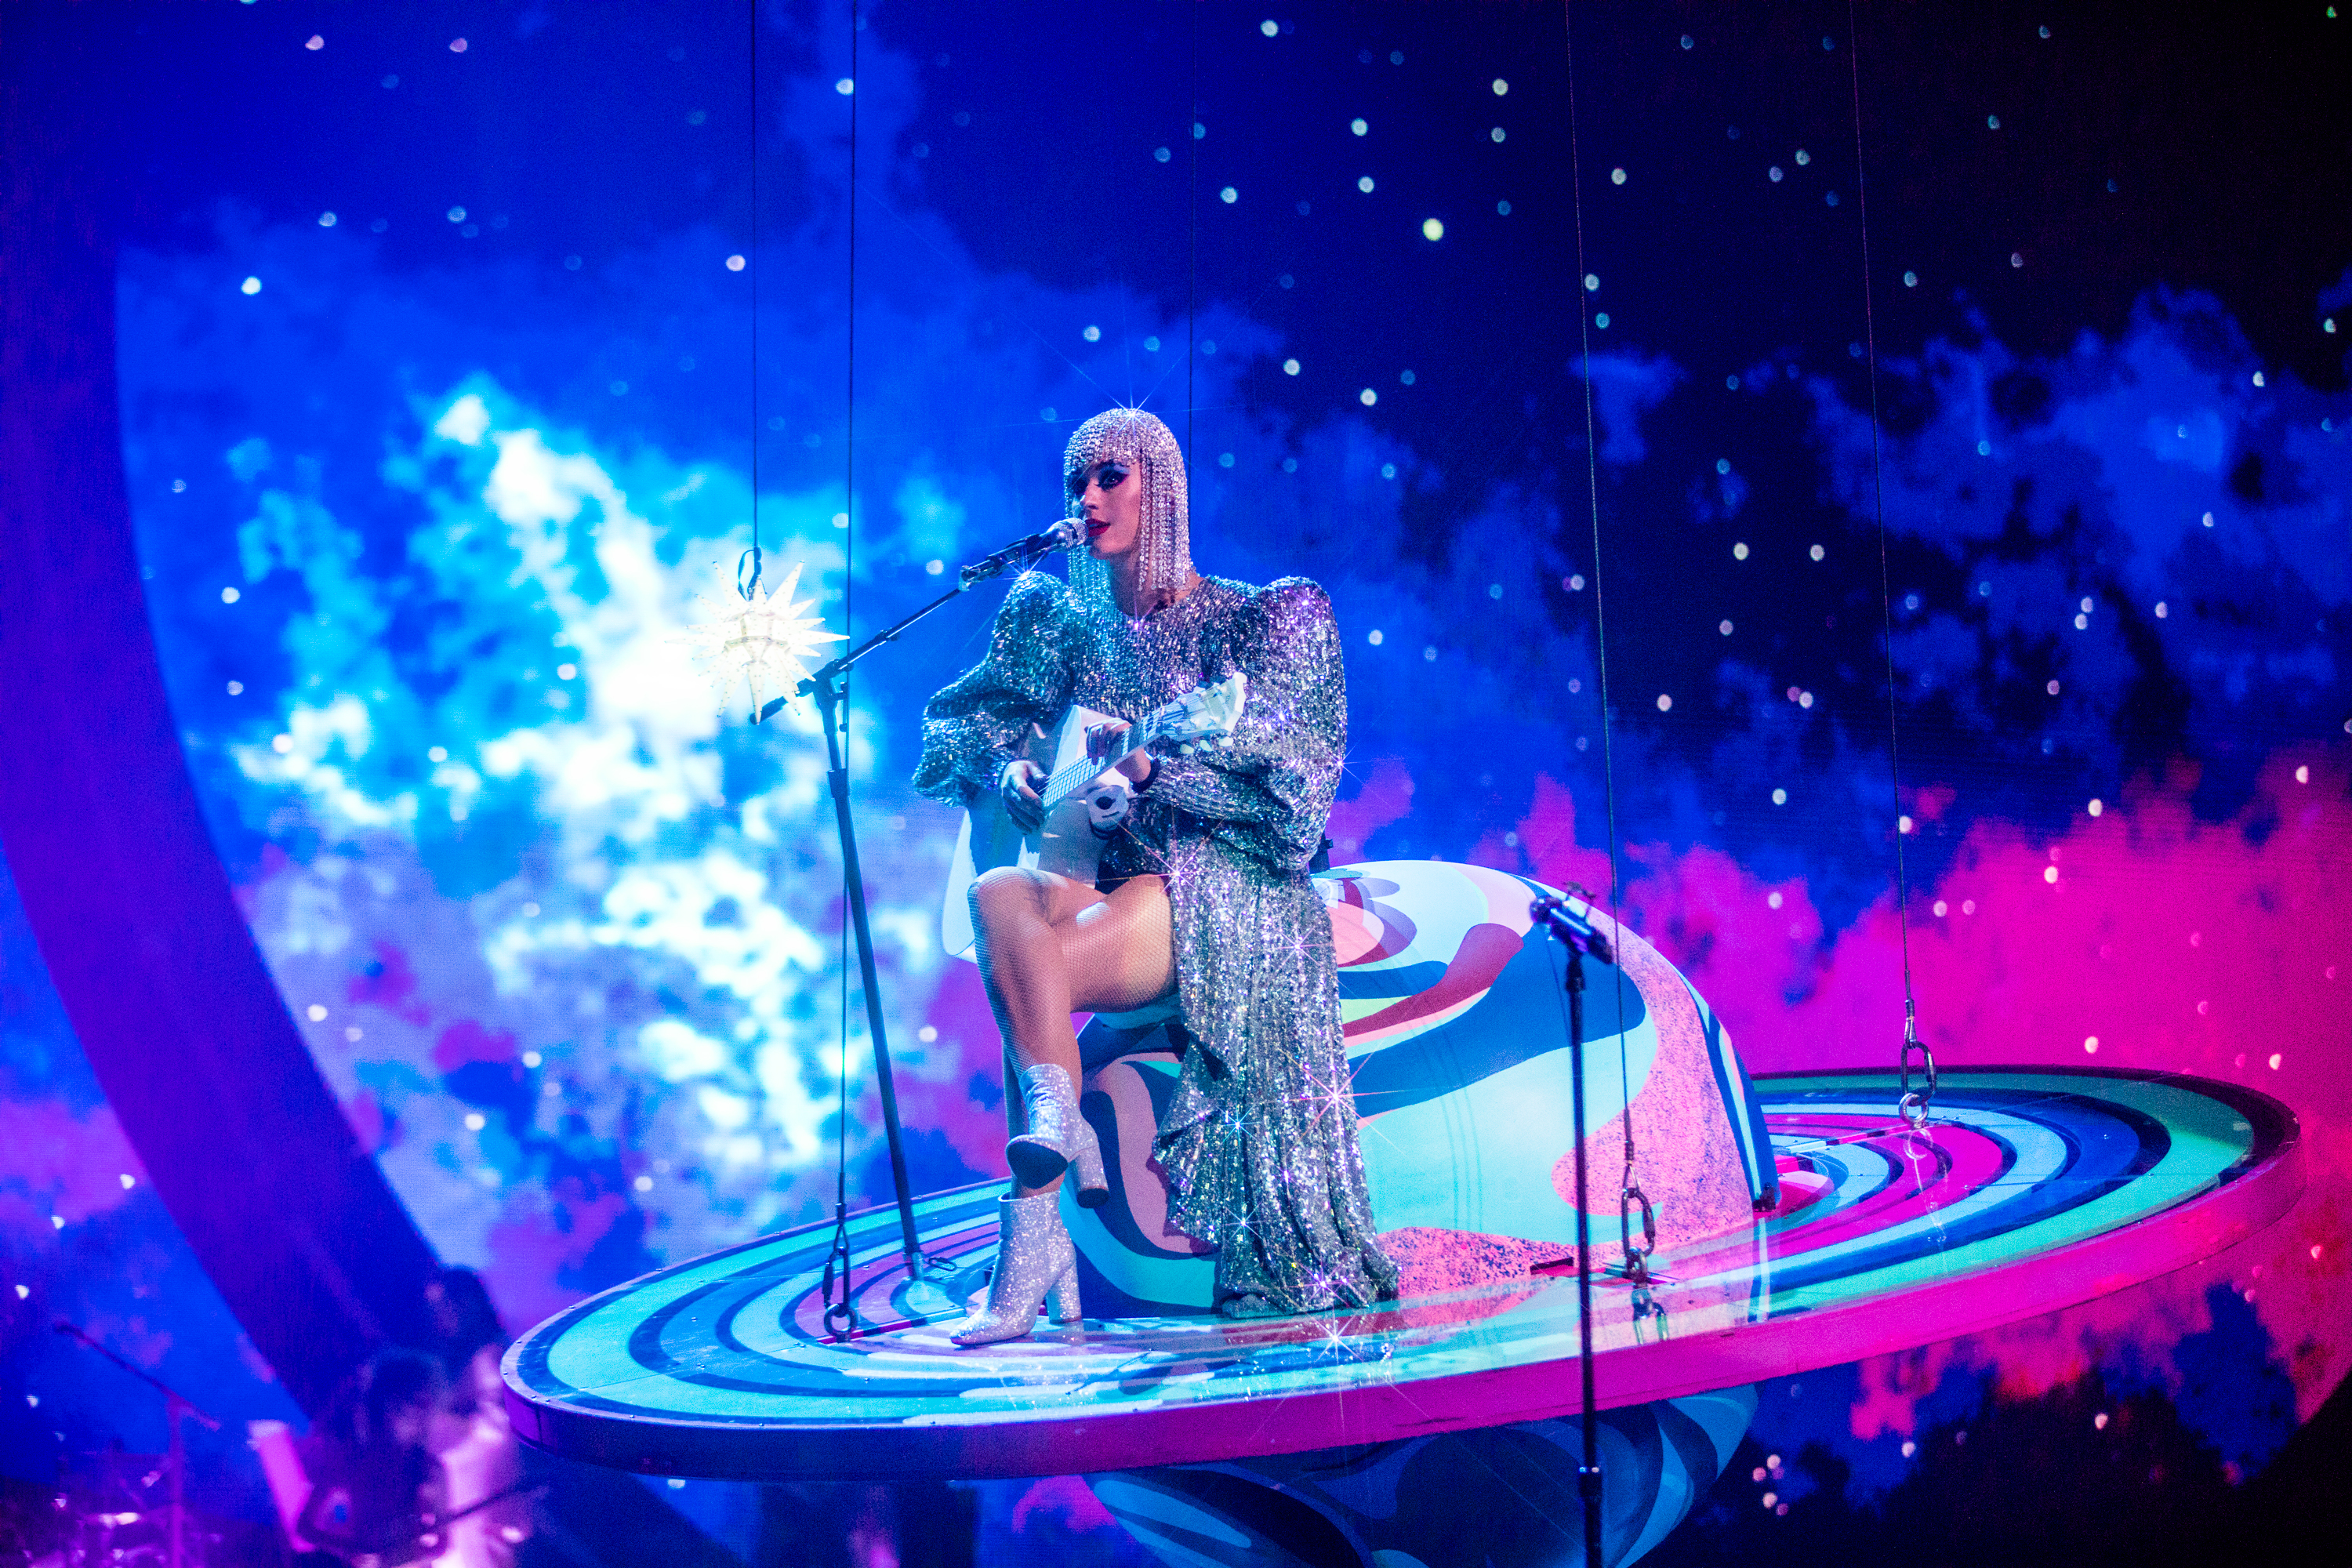 American singer Katy Perry wears a dress by Cong Tri during a performance in her Witness world tour in September 2017. Photo: katyperry.com